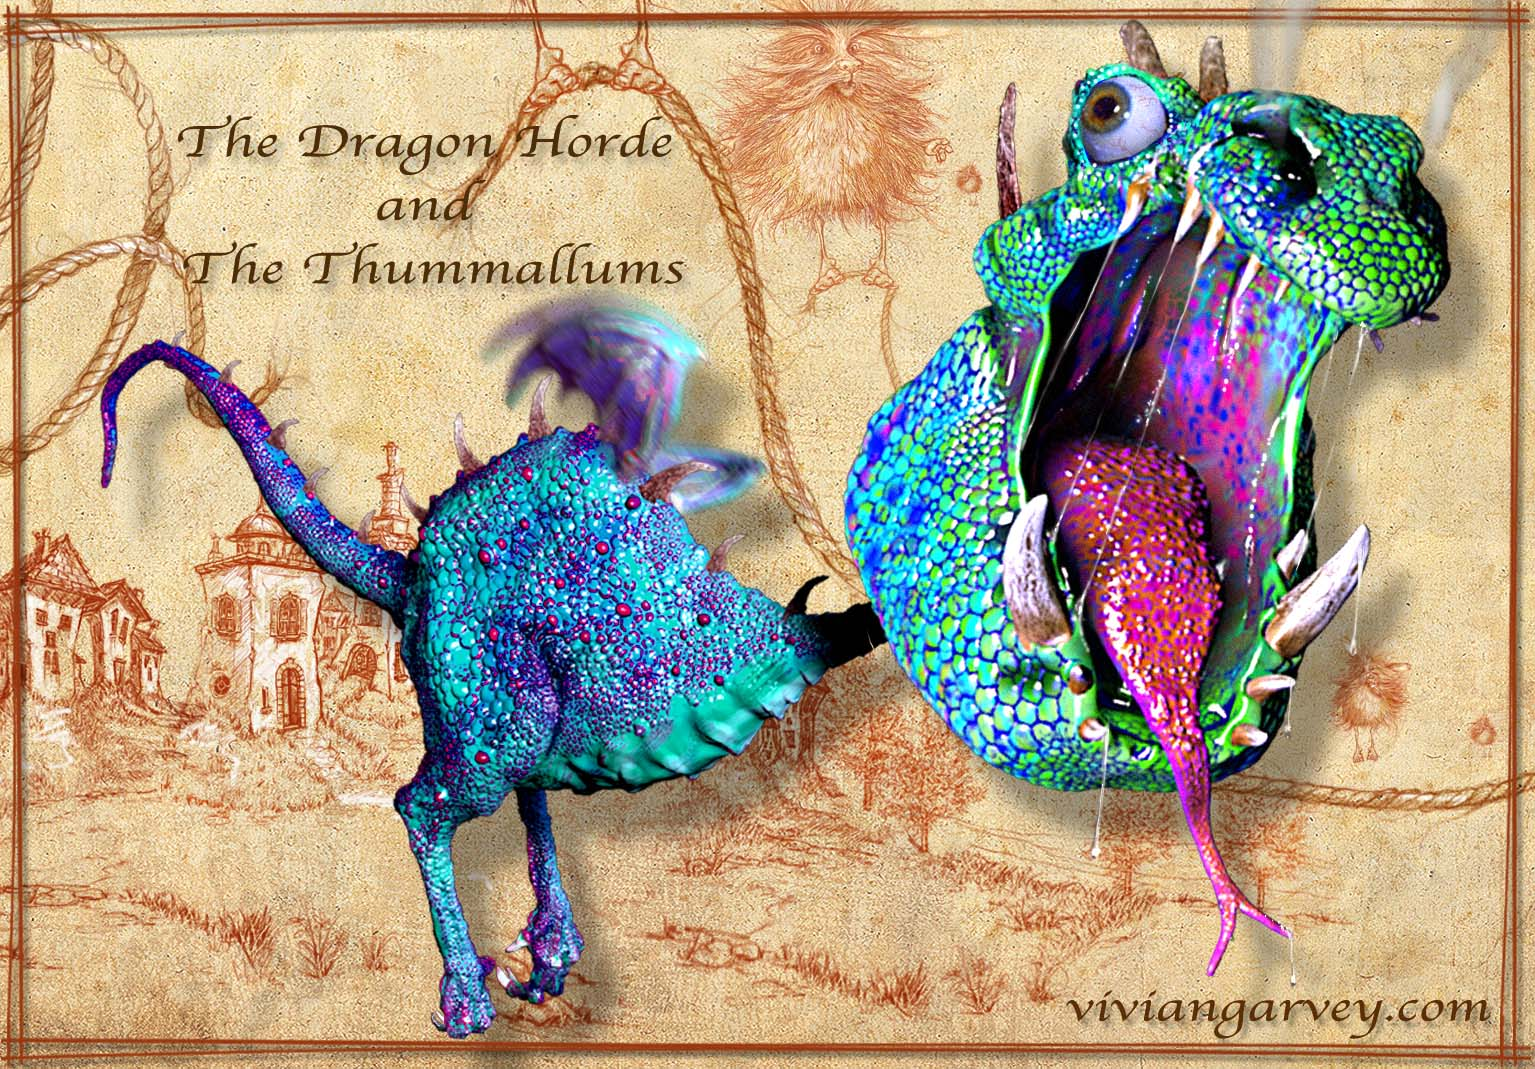 A Dragon From The Dragon Horde and the Thummallums by Vivian Garvey